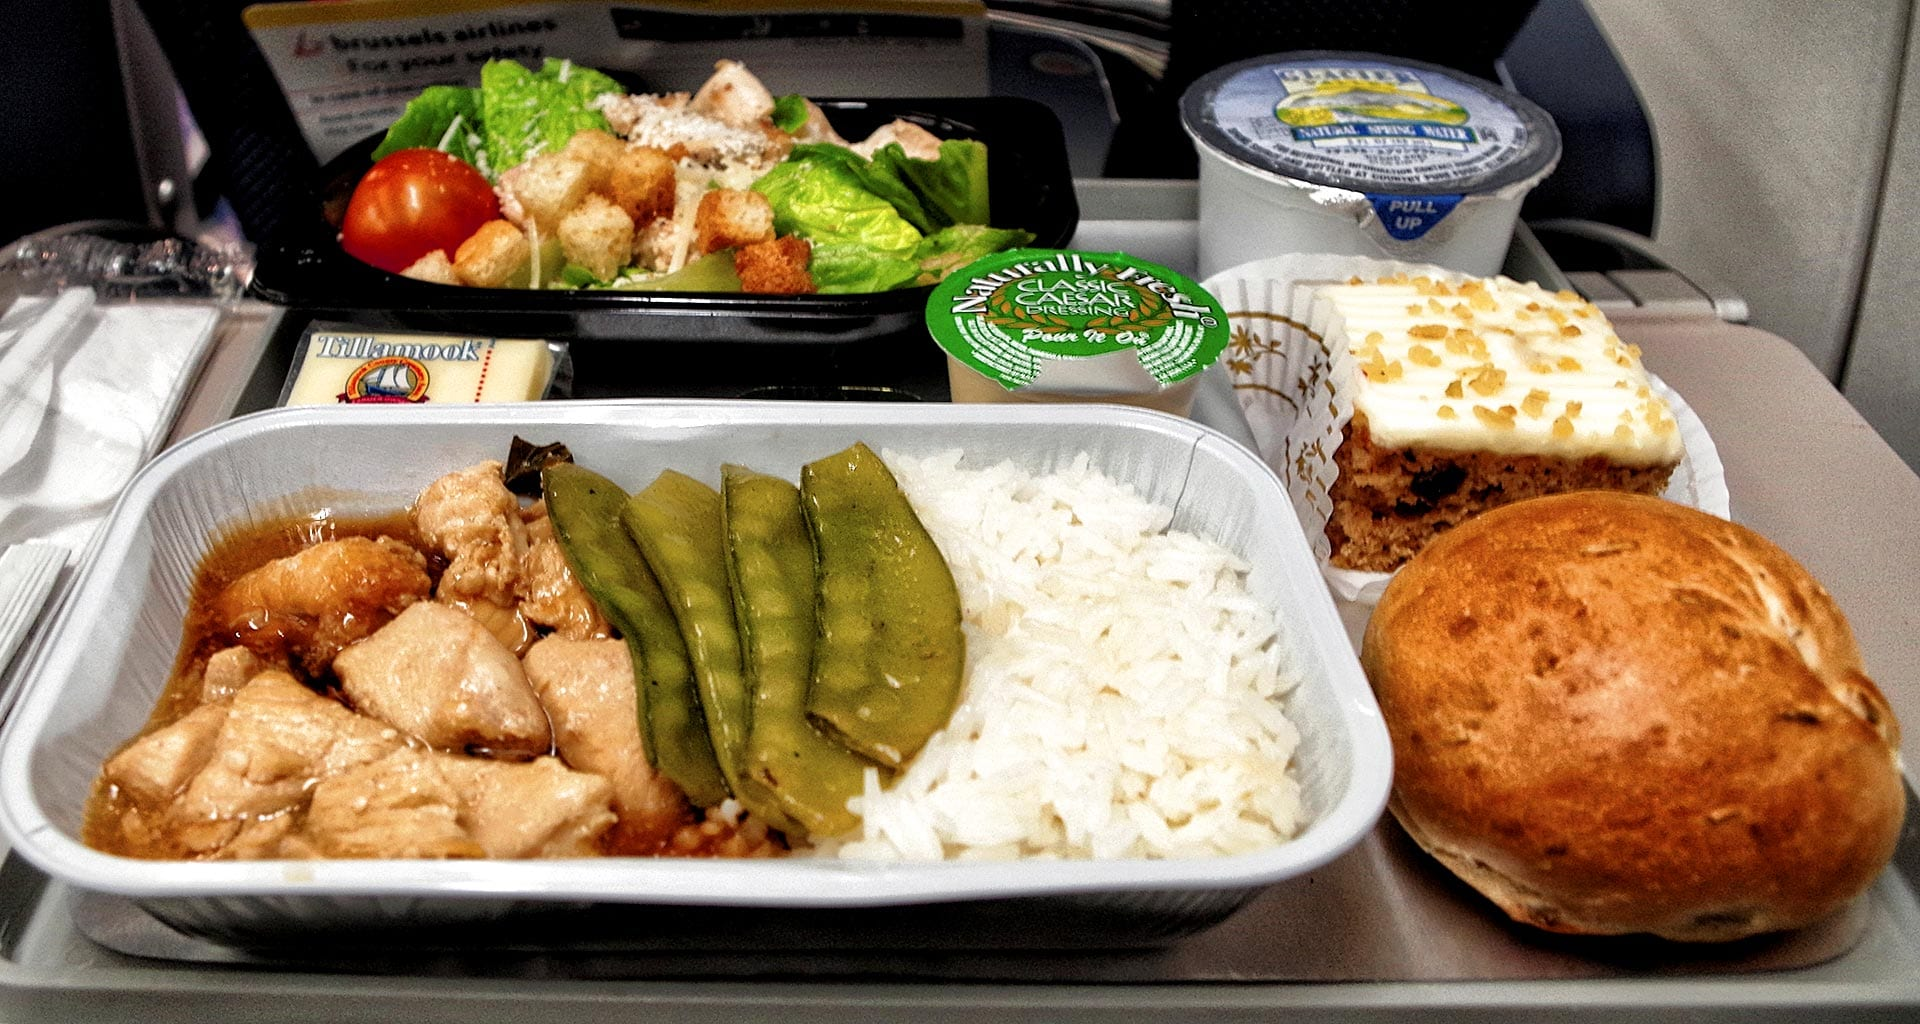 Brussels airlines economy class meal tray